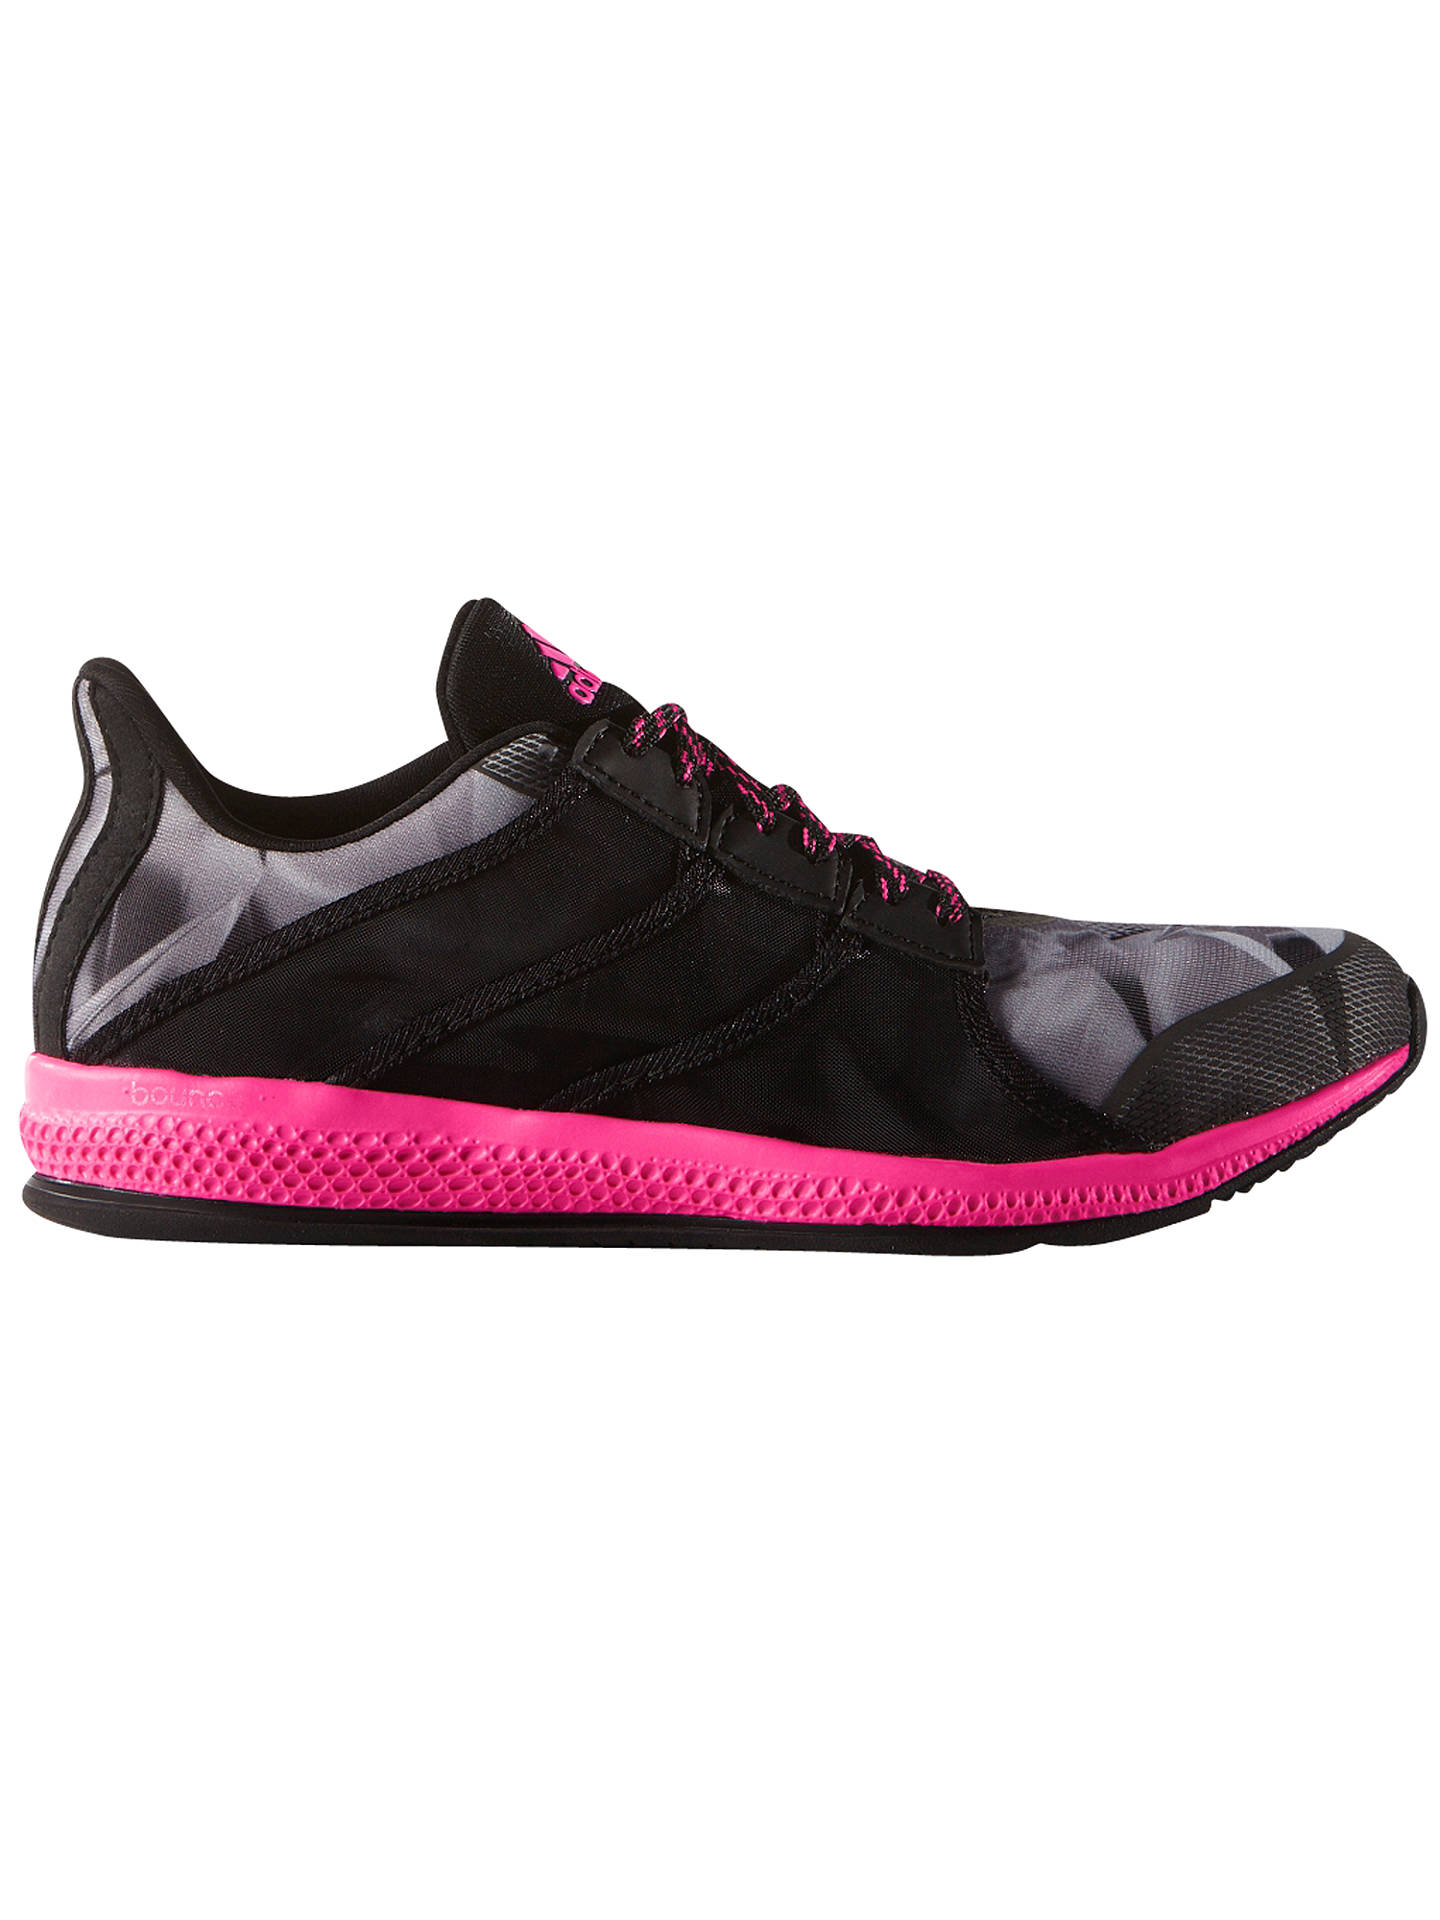 quality design 5232f e0463 BuyAdidas Gymbreaker Bounce Women s Cross Trainers, Black Pink, 6 Online at  johnlewis.